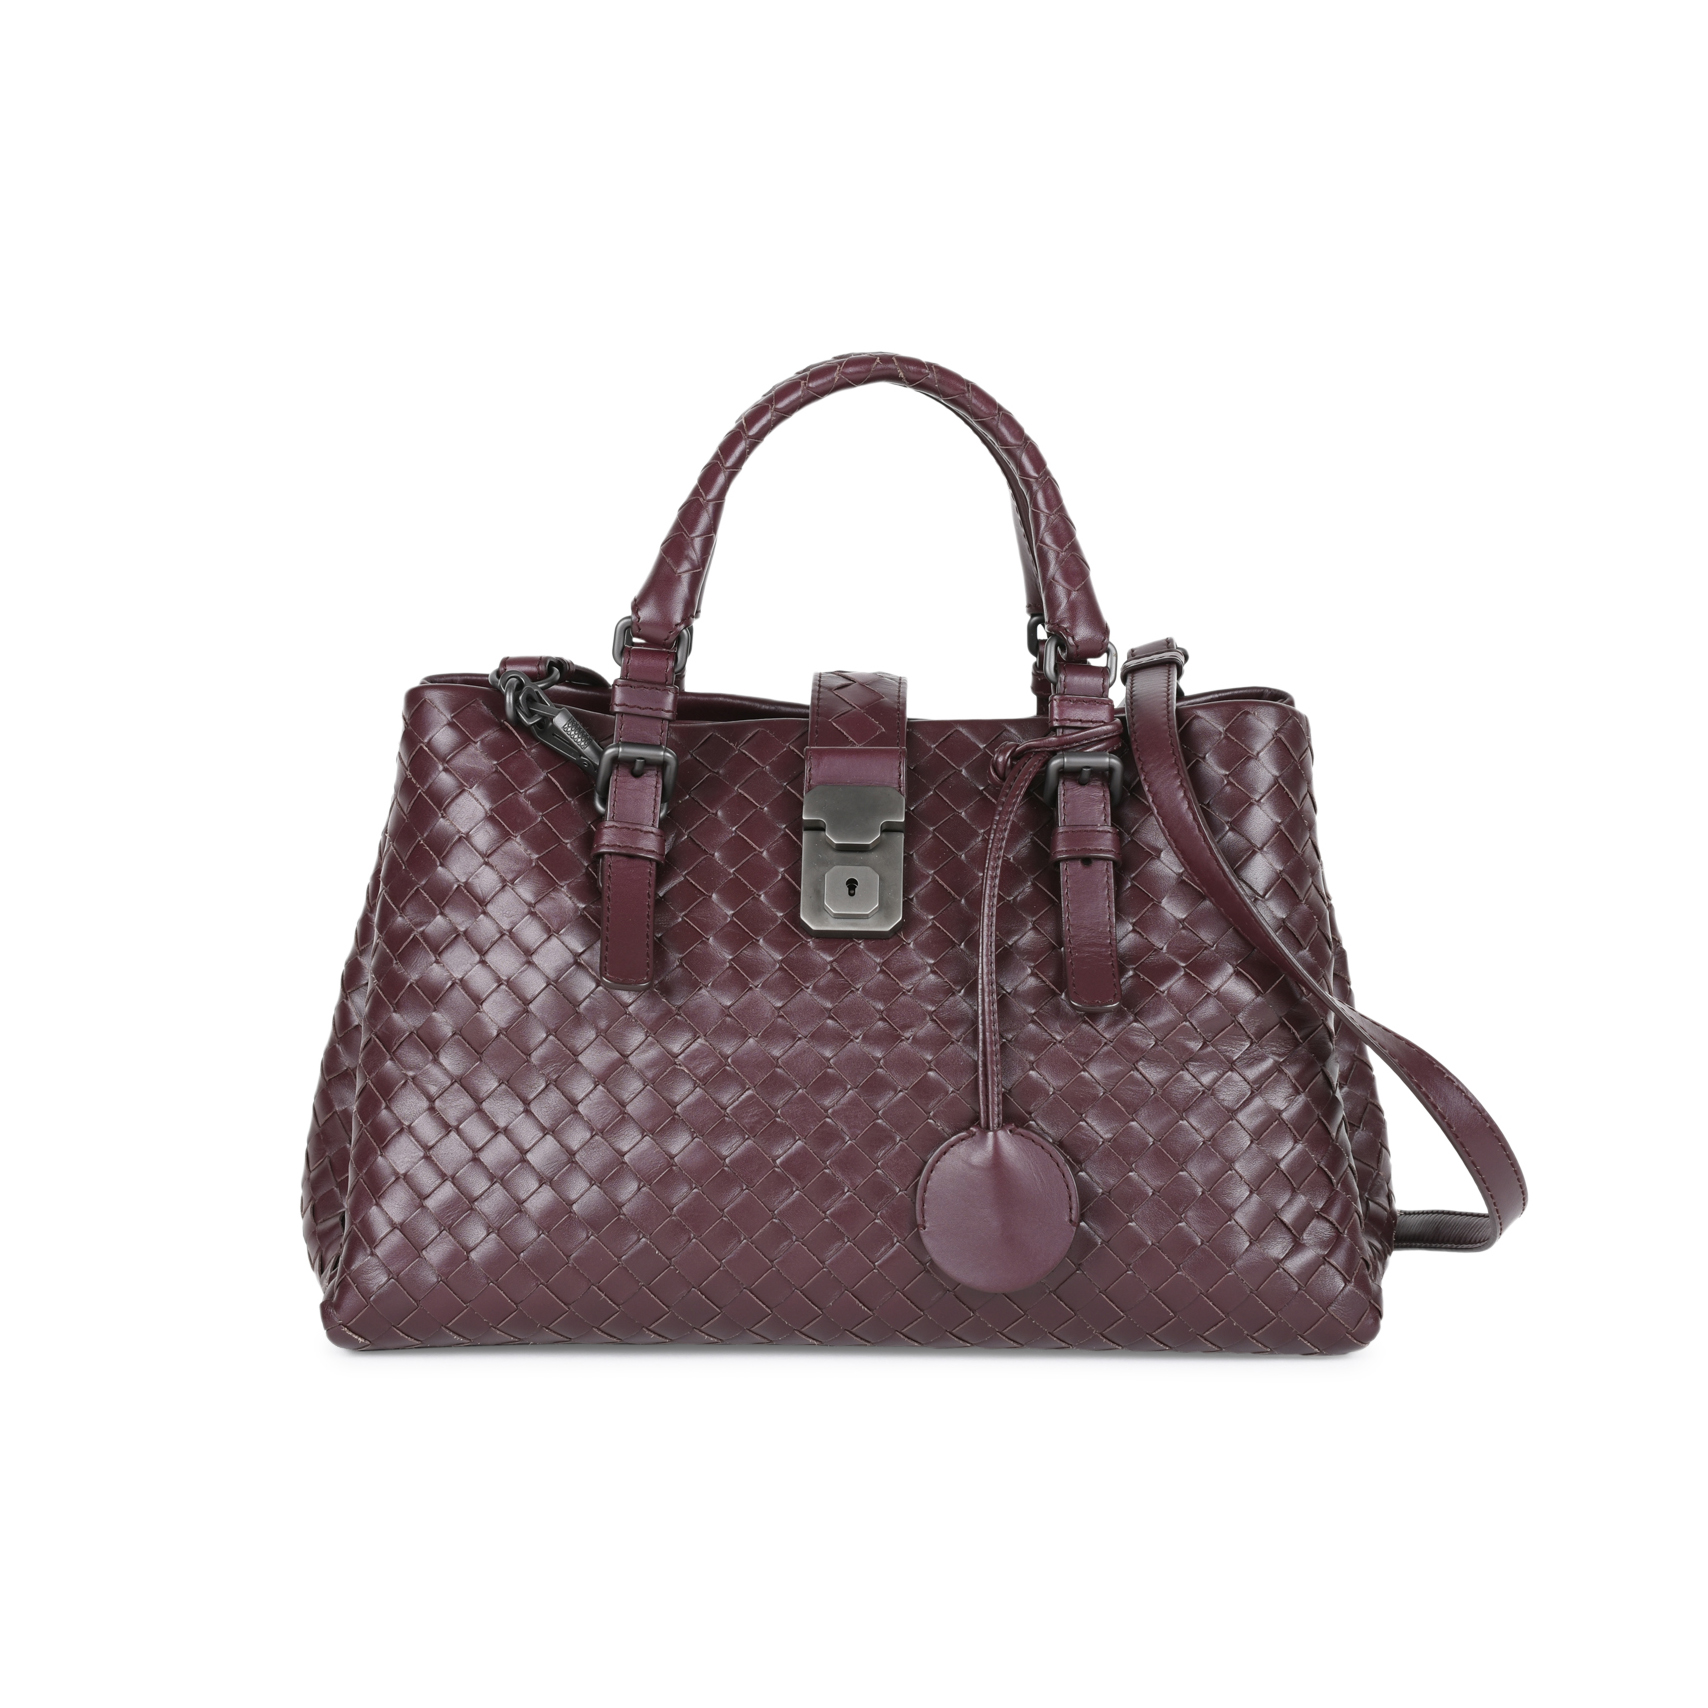 8c36973c6d Authentic Second Hand Bottega Veneta Medium Roma Intrecciato Leather Tote  (PSS-444-00011)